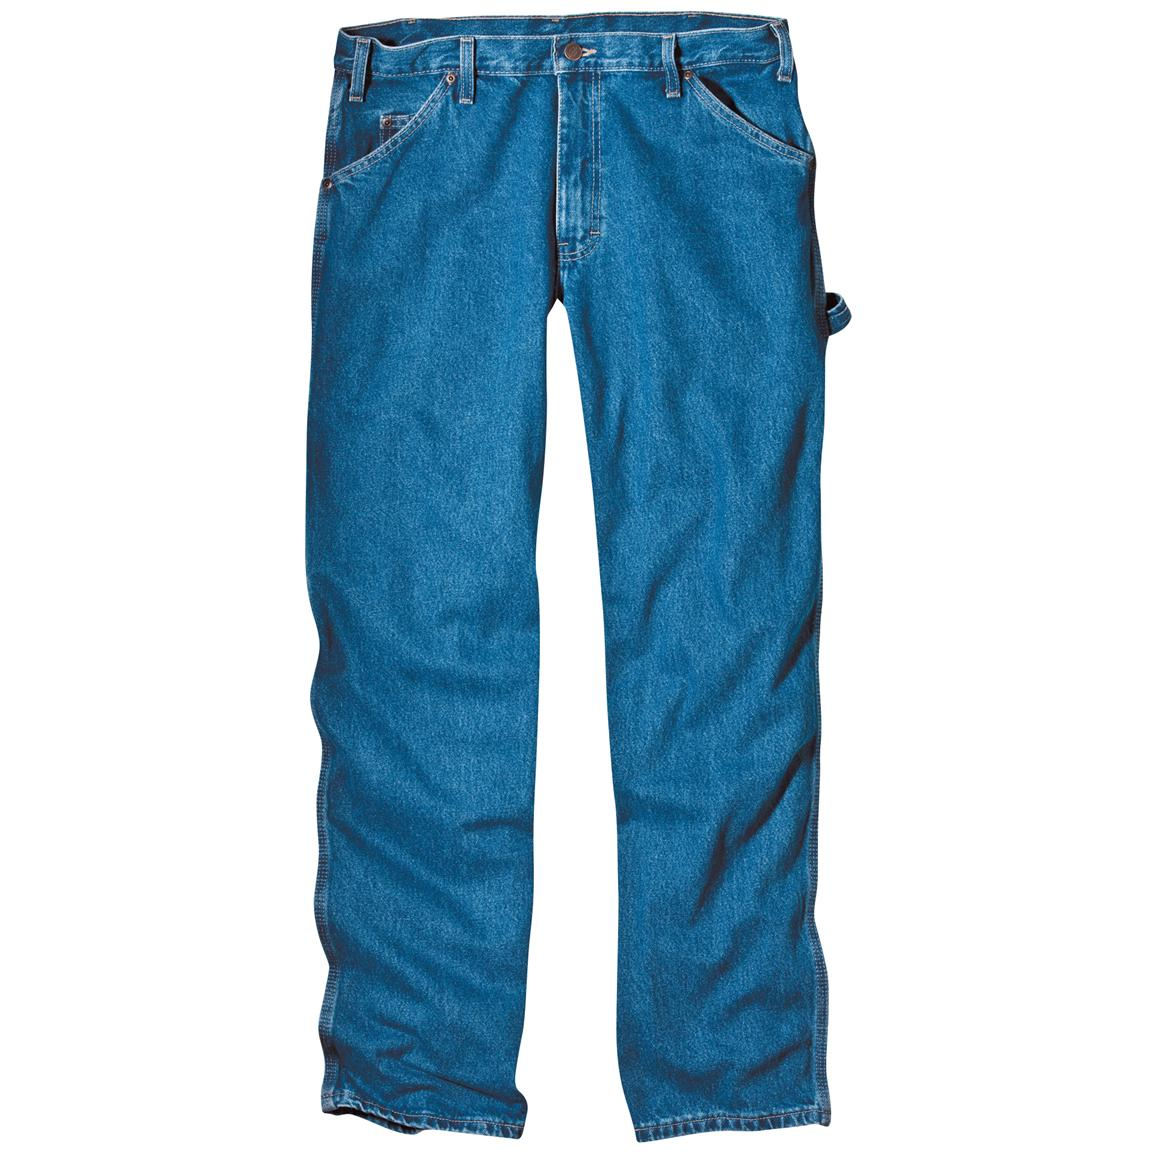 Image Gallery jeans day clip art